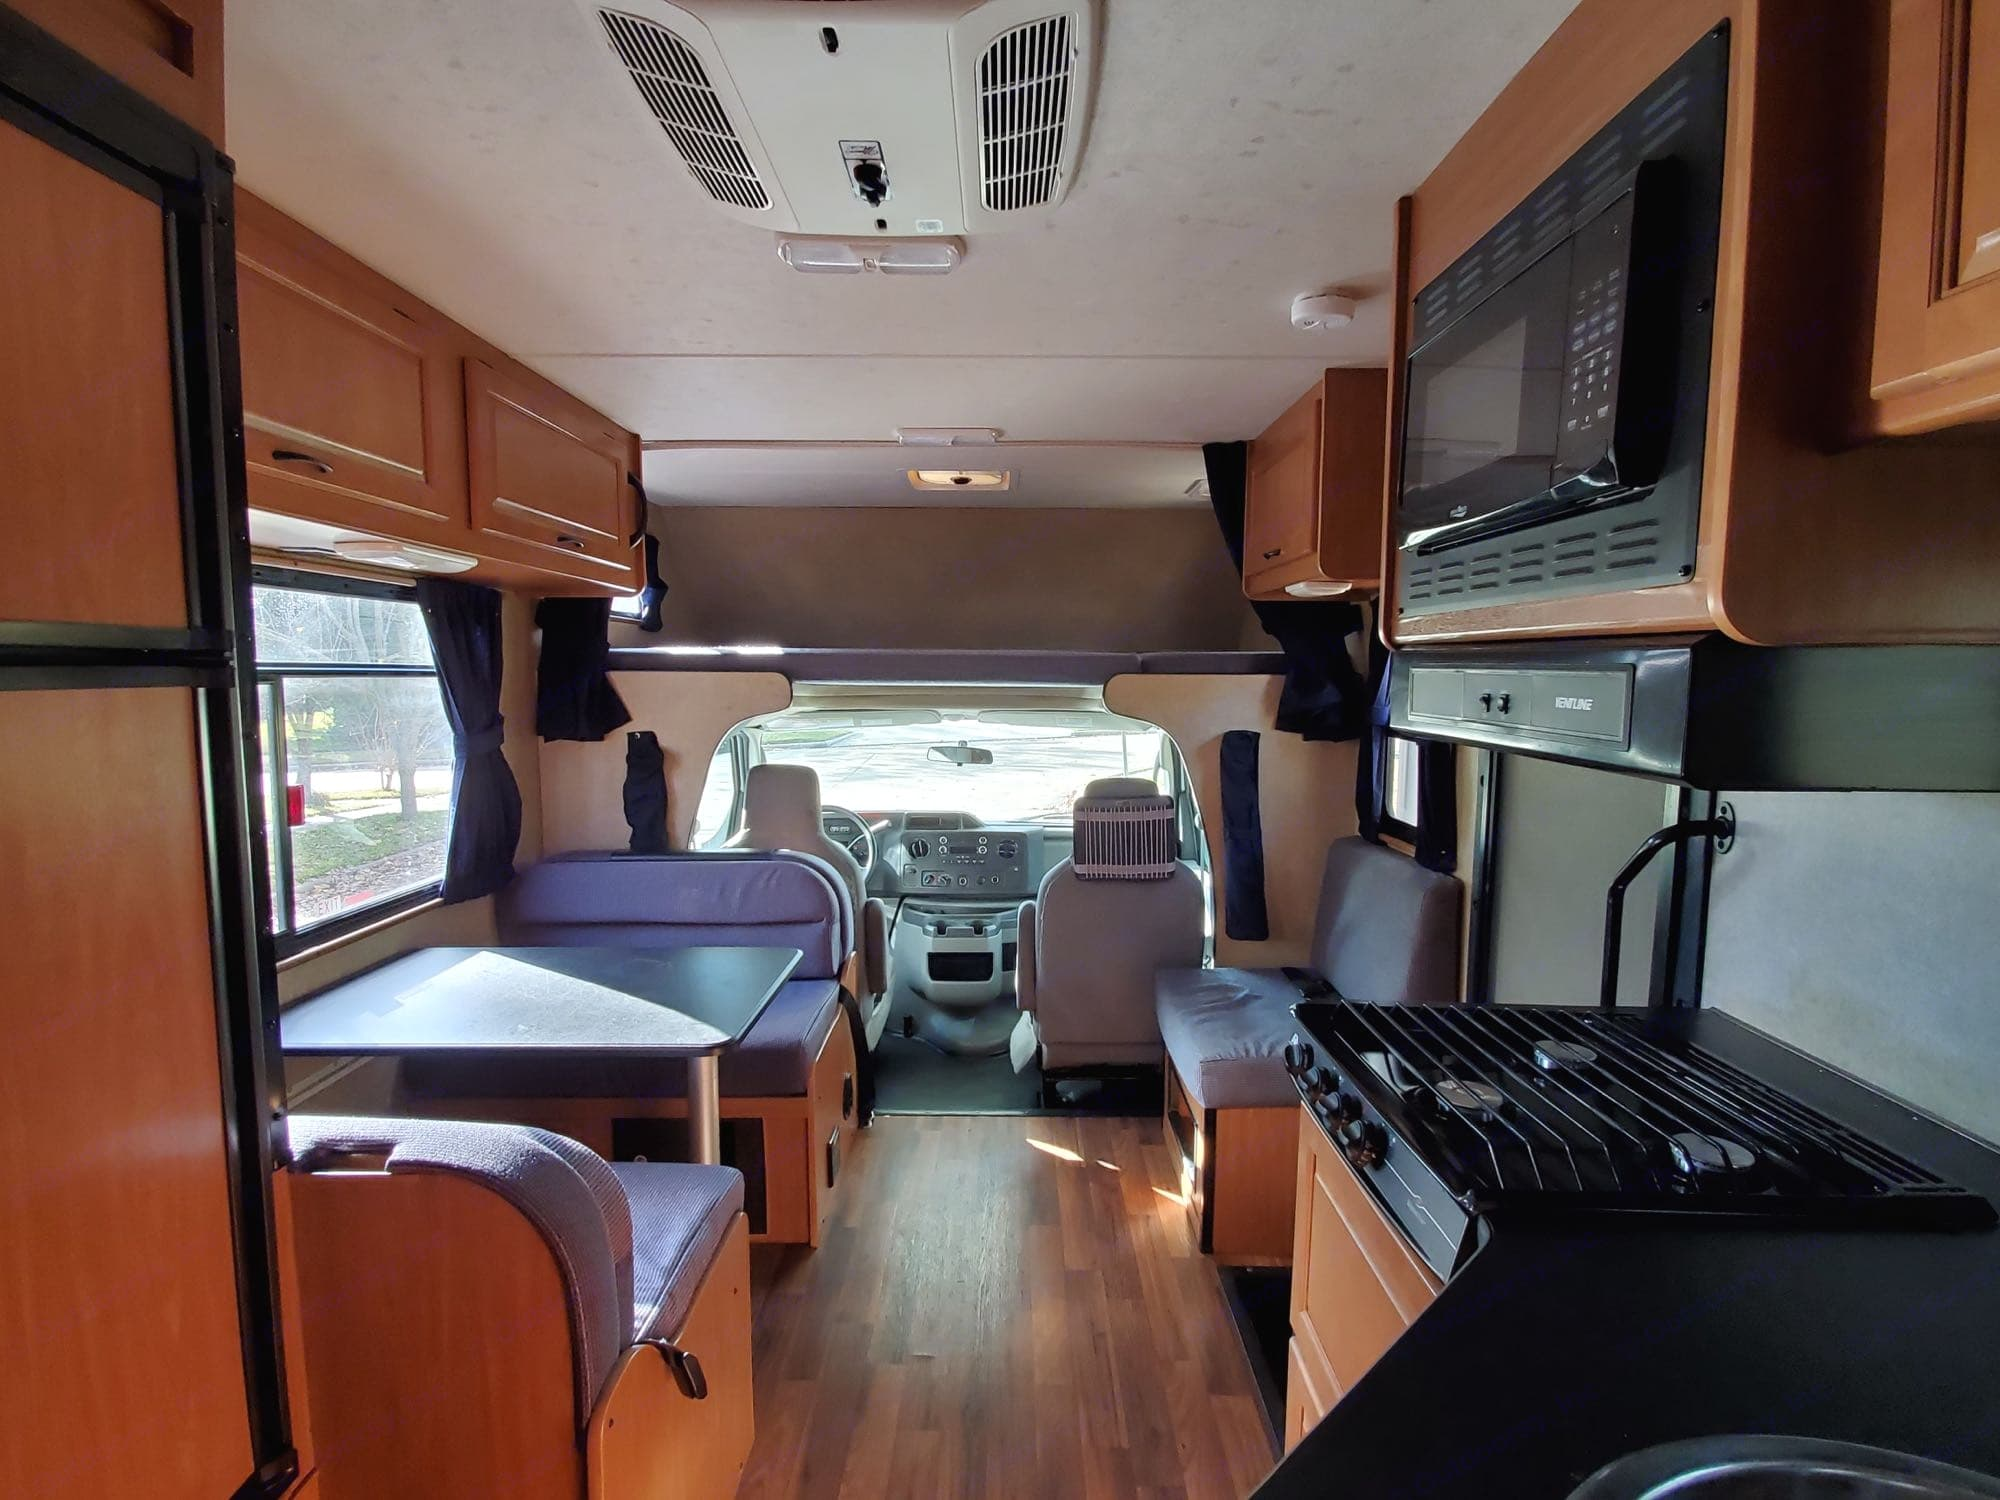 Interior living space feels large and open, with easy access to all amenities.. Thor Motor Coach Four Winds Majestic 2016